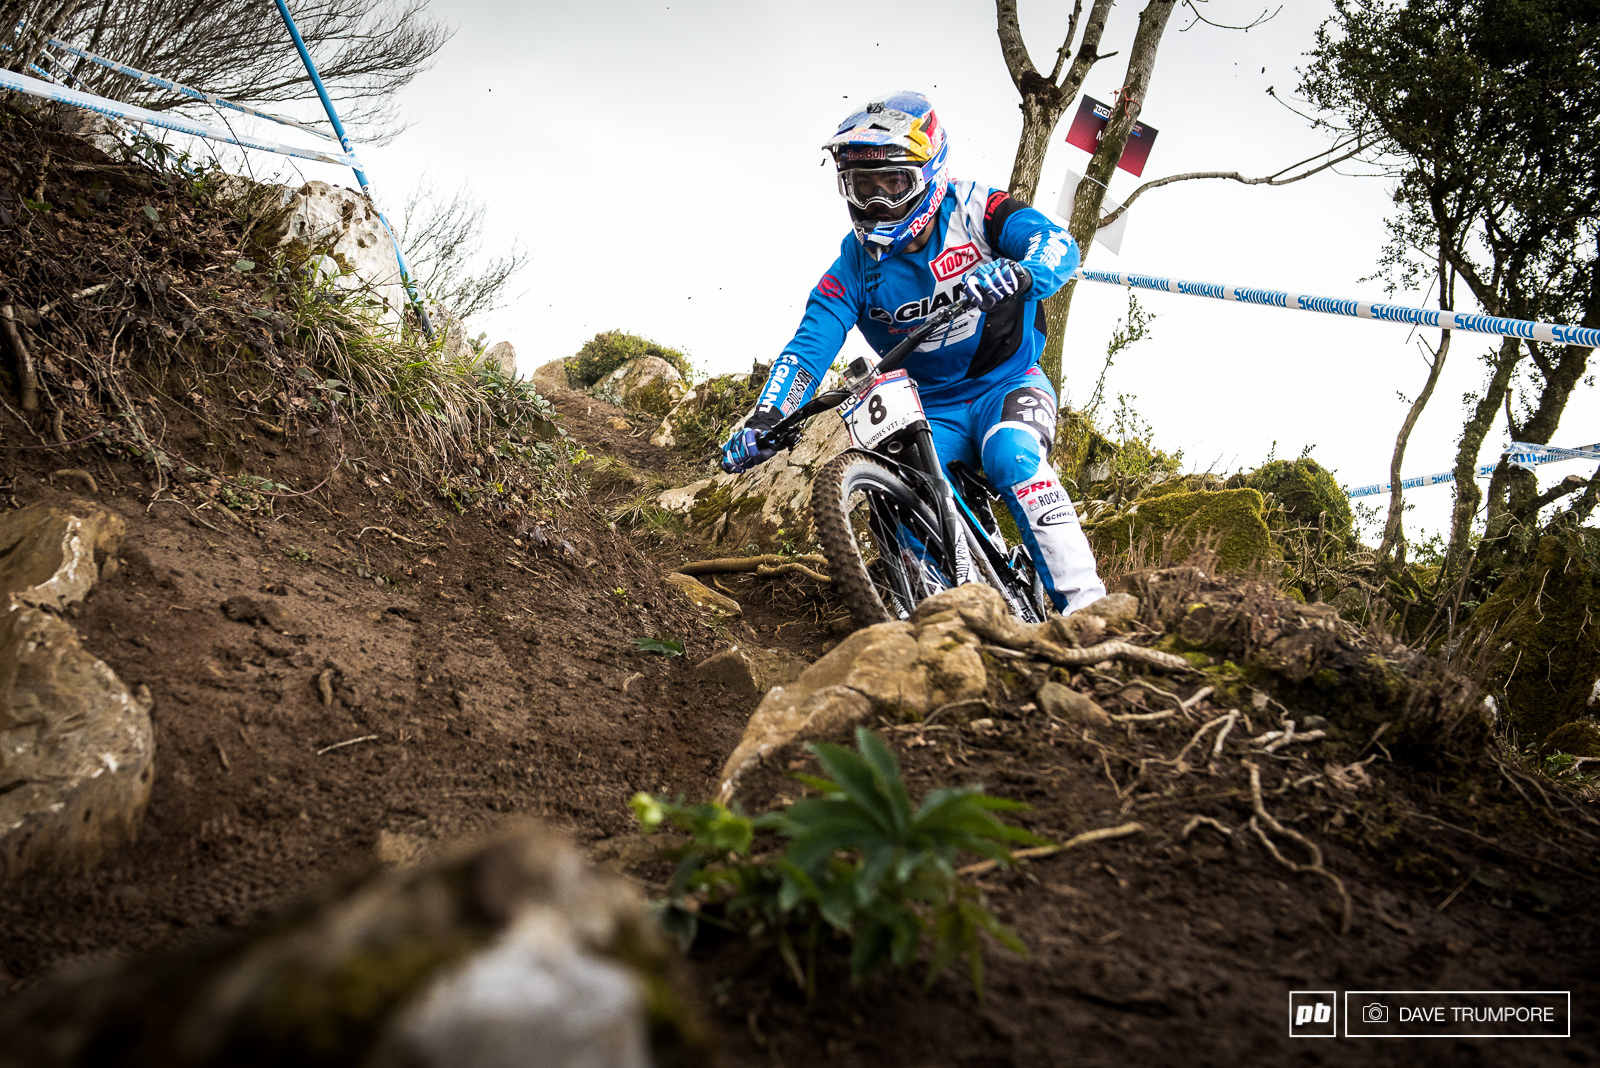 Pinned and confident all day no matter the conditions for Marcelo Gutierrez.